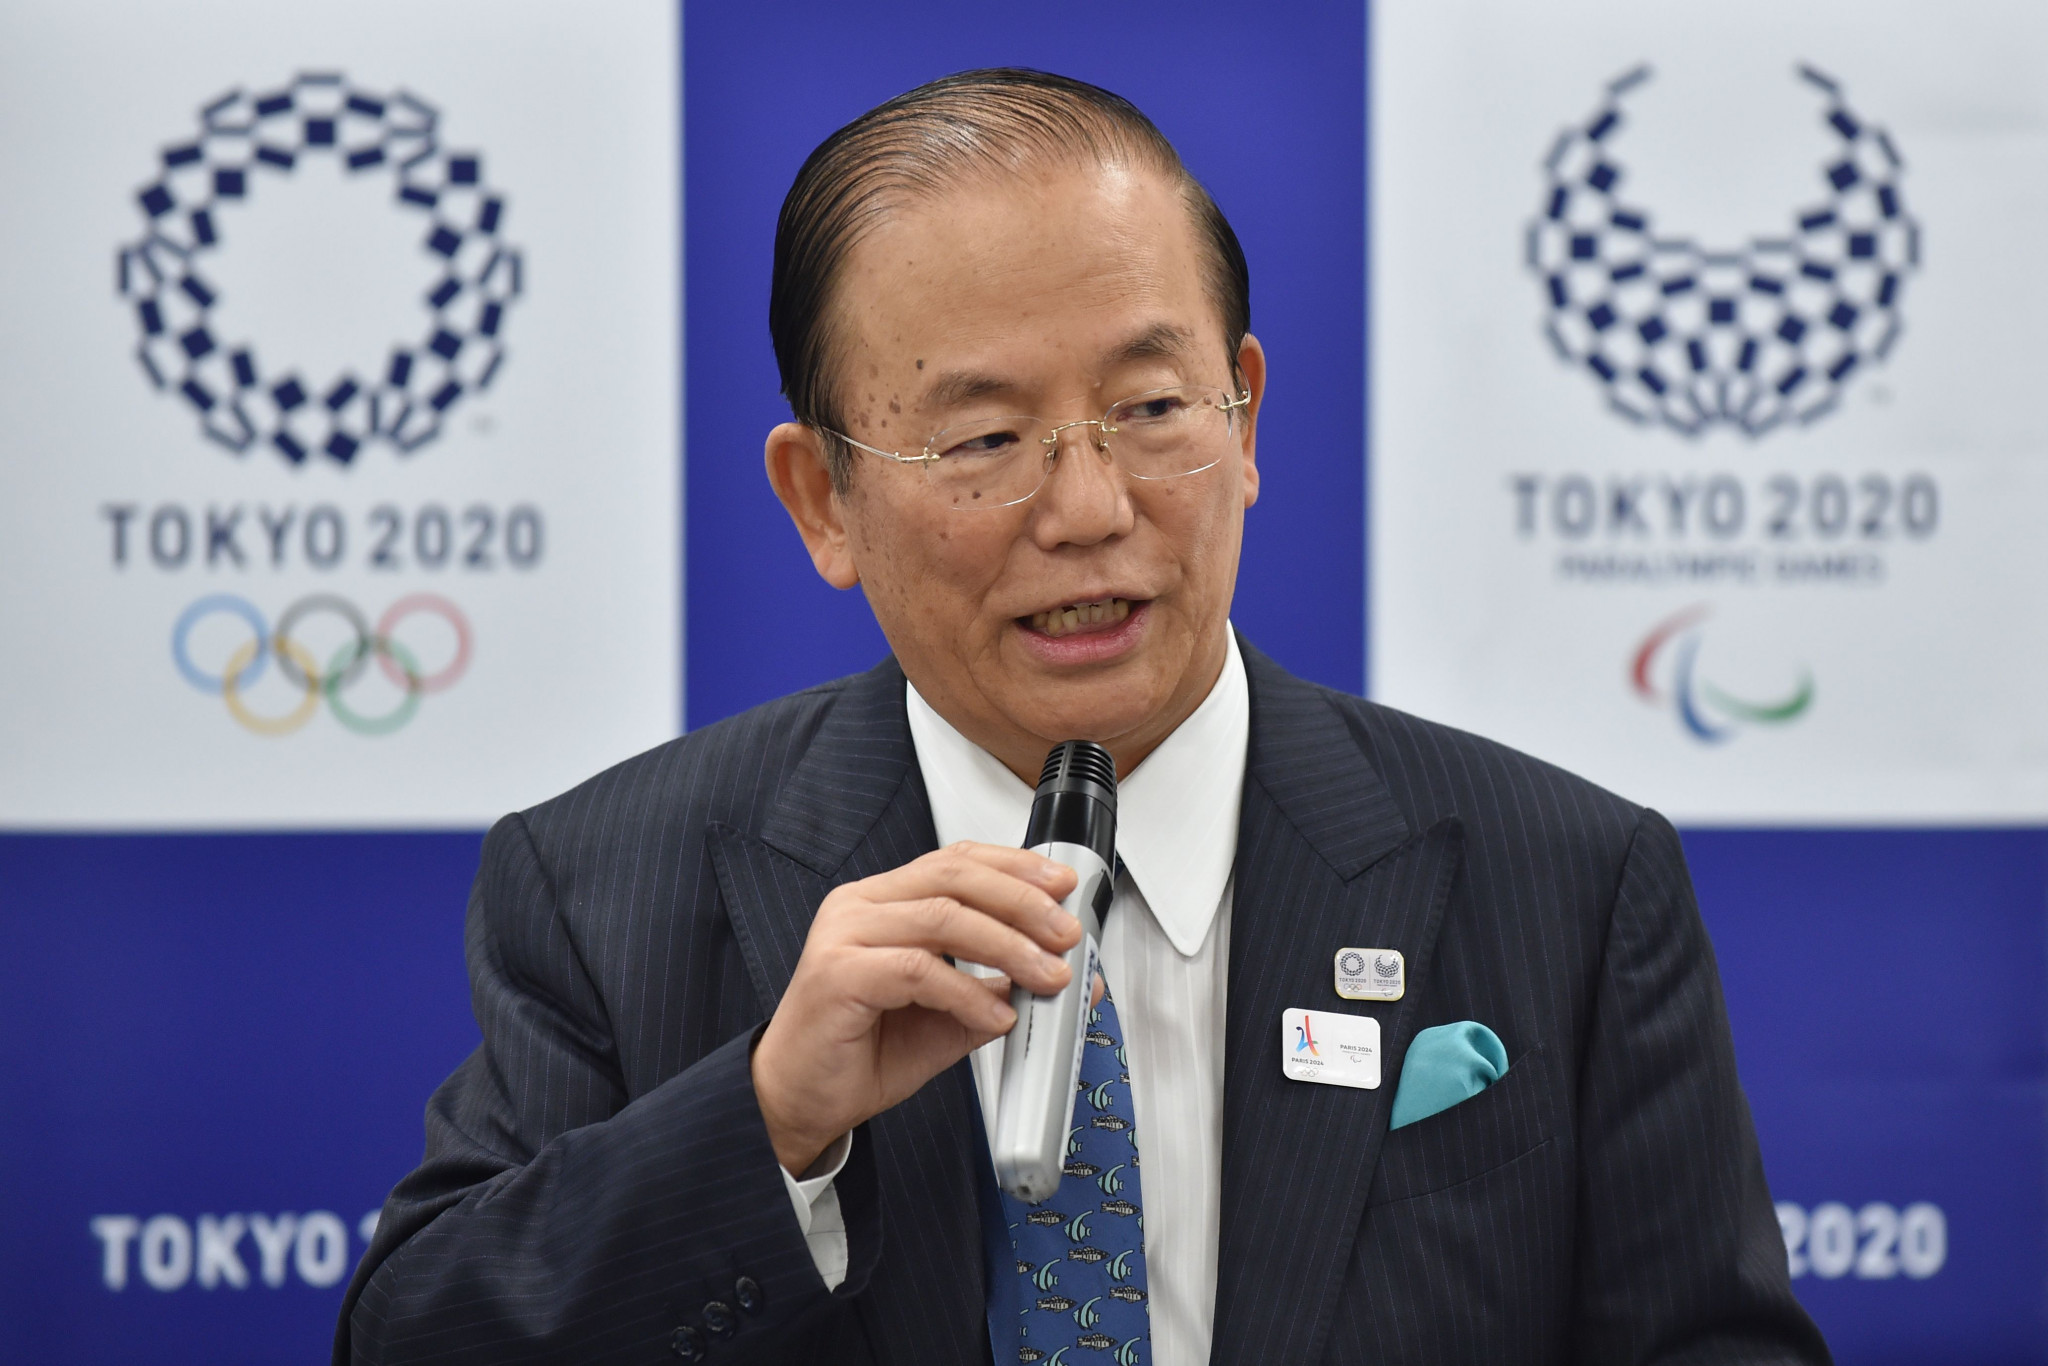 Tokyo 2020 chief executive Toshiro Muto said each volunteer was essential to the success of the Games ©Getty Images